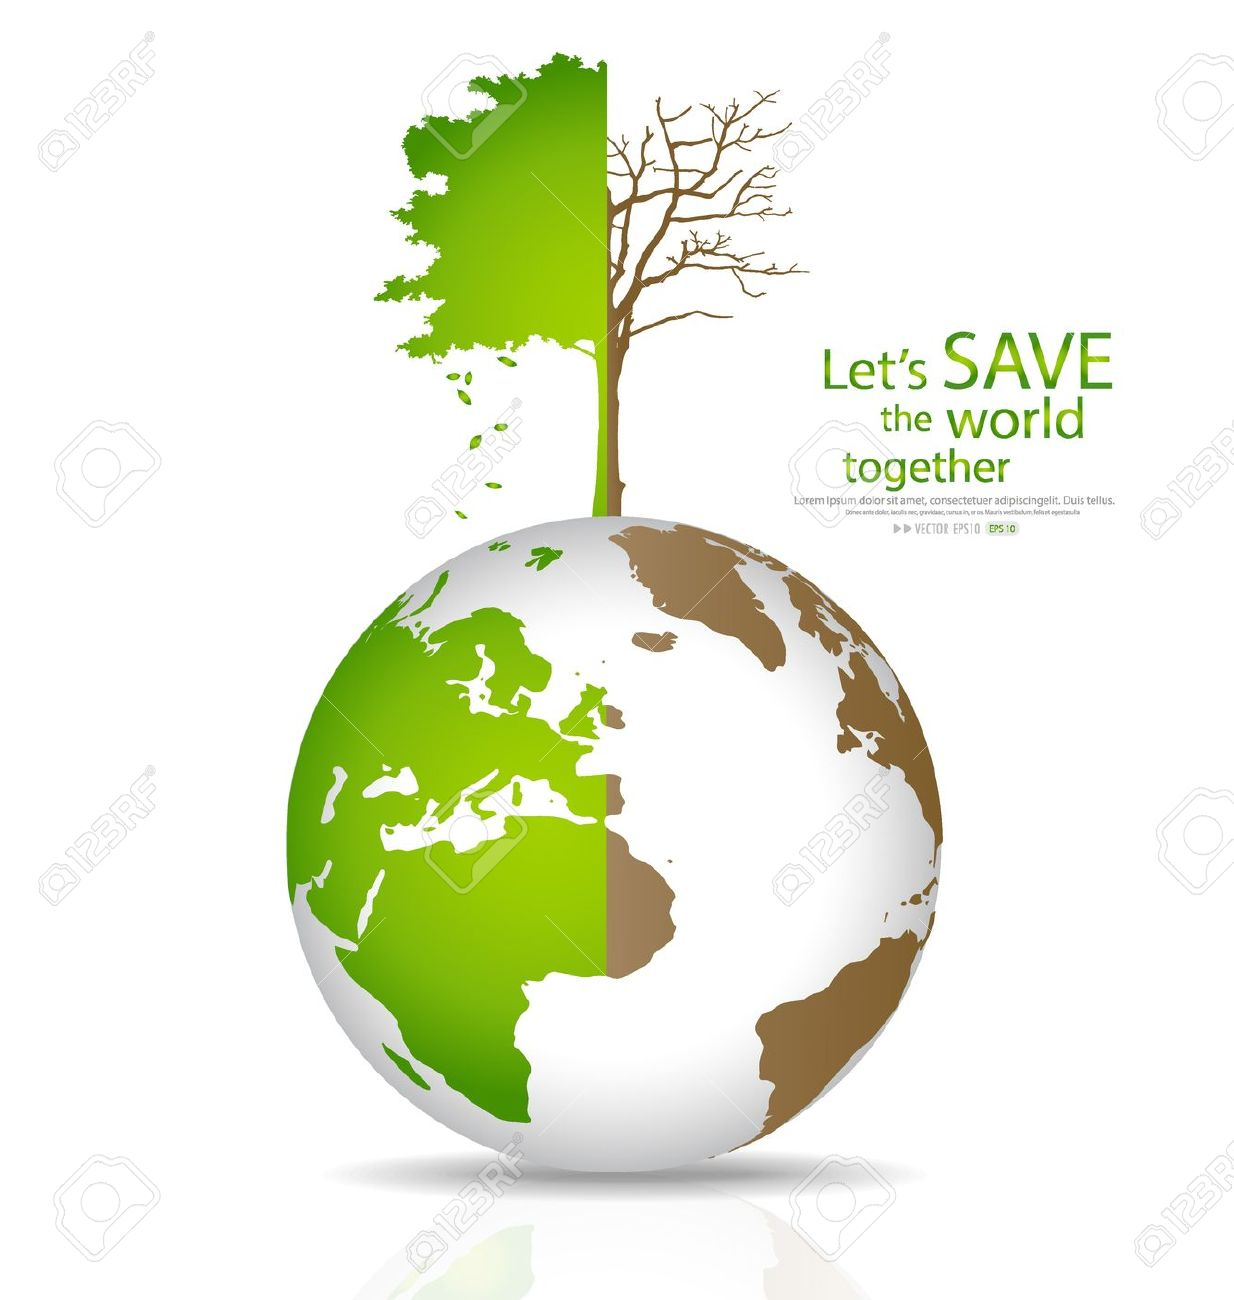 Save trees clipart clip art free Plant trees save earth clipart - ClipartFest clip art free